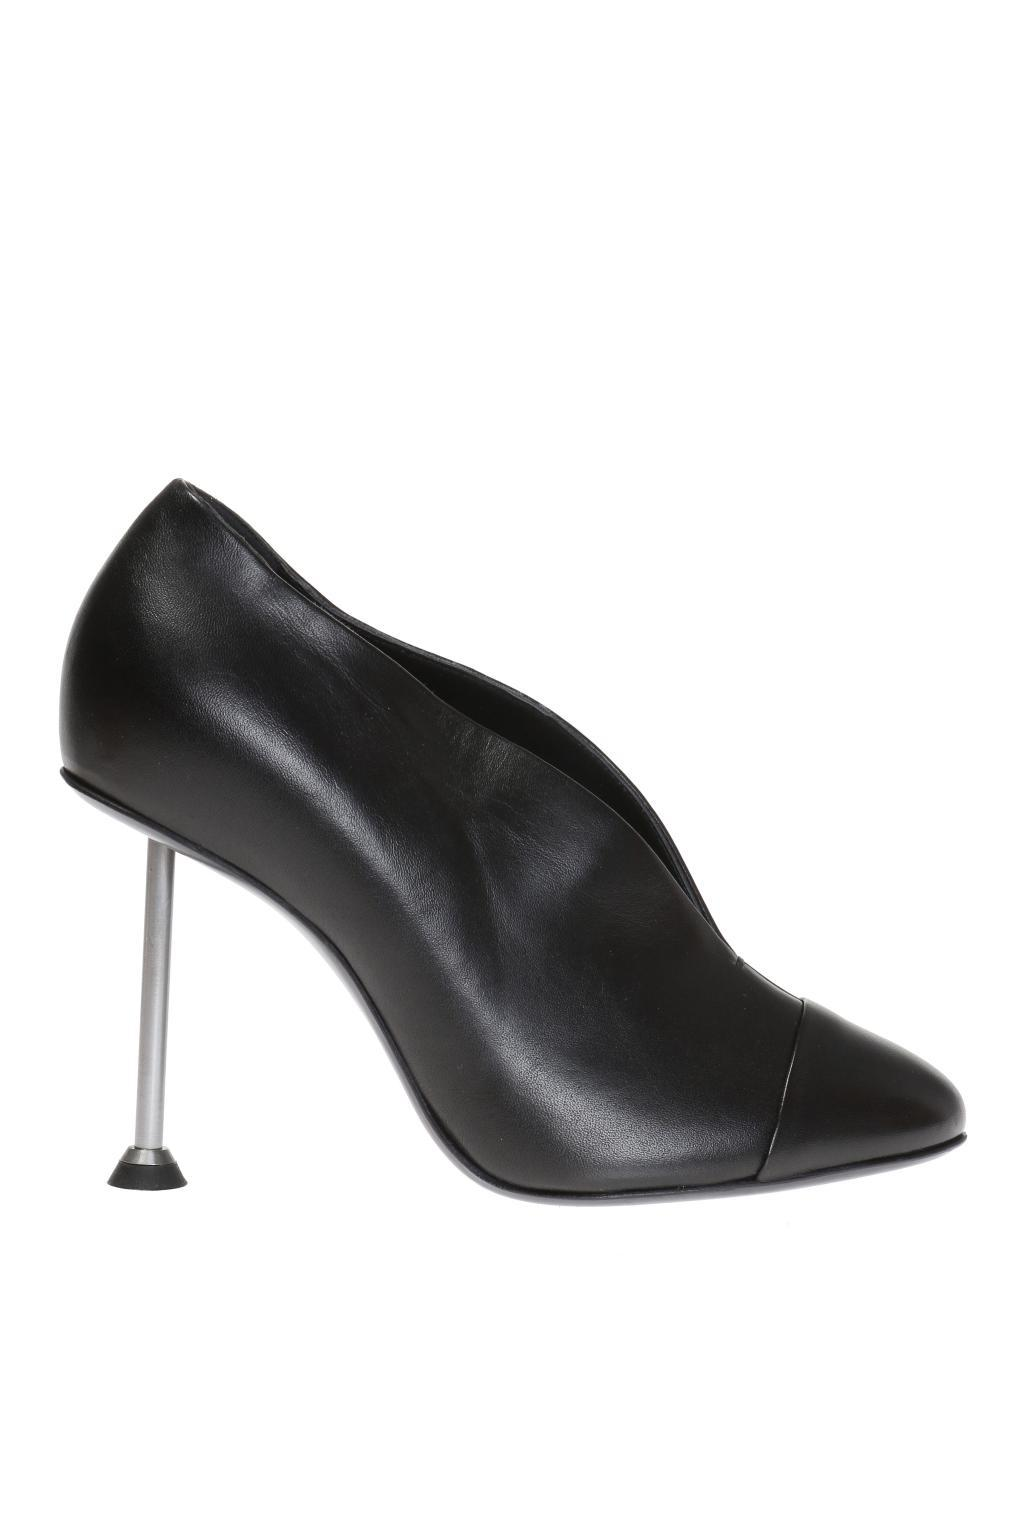 Pre-owned - Patent leather heels Victoria Beckham 5hKhy